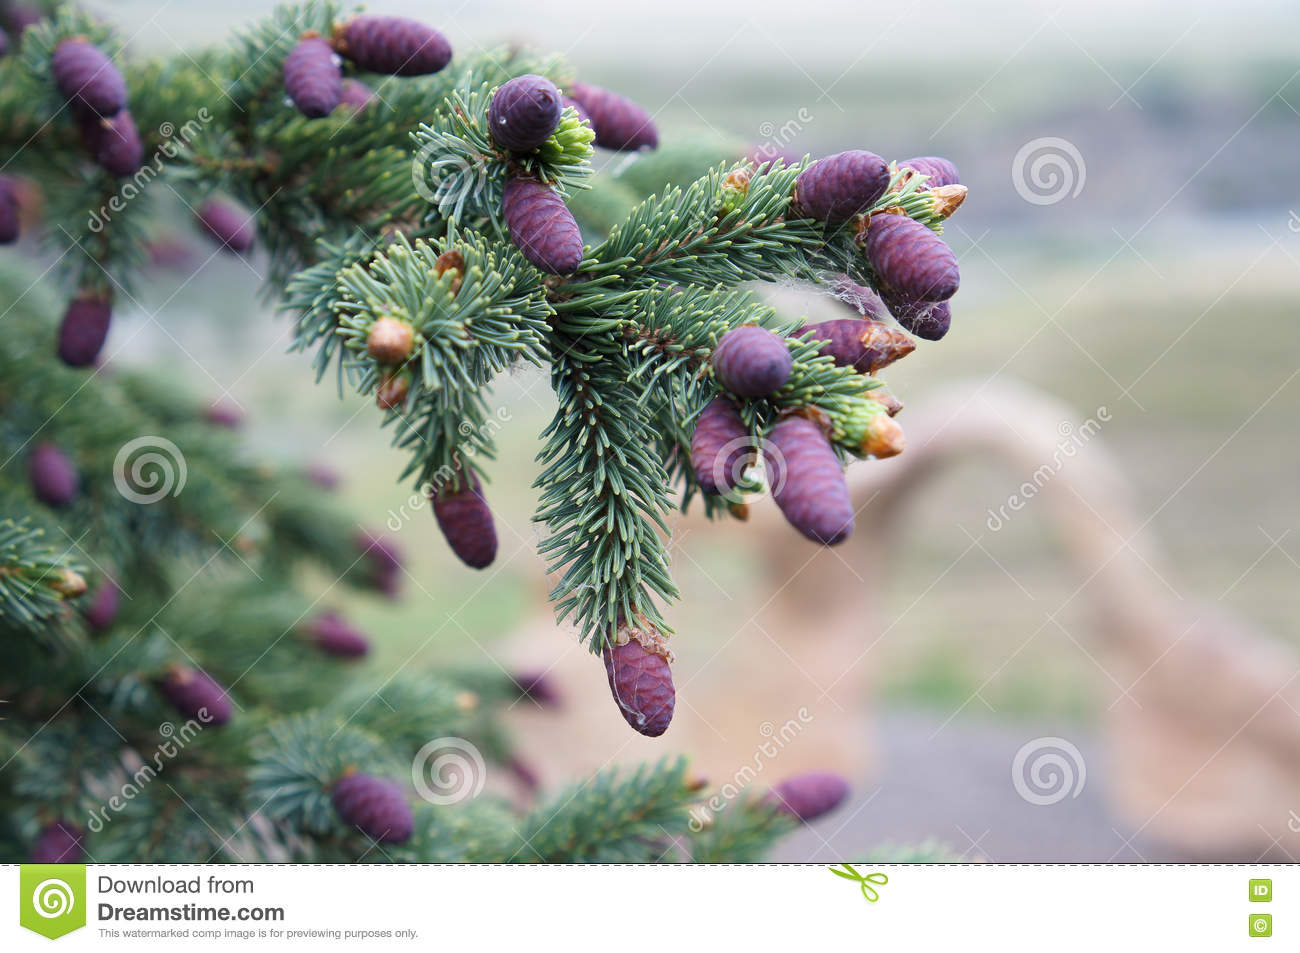 Pine Tree Branch Purple Pine Cones Stock Images Download 364